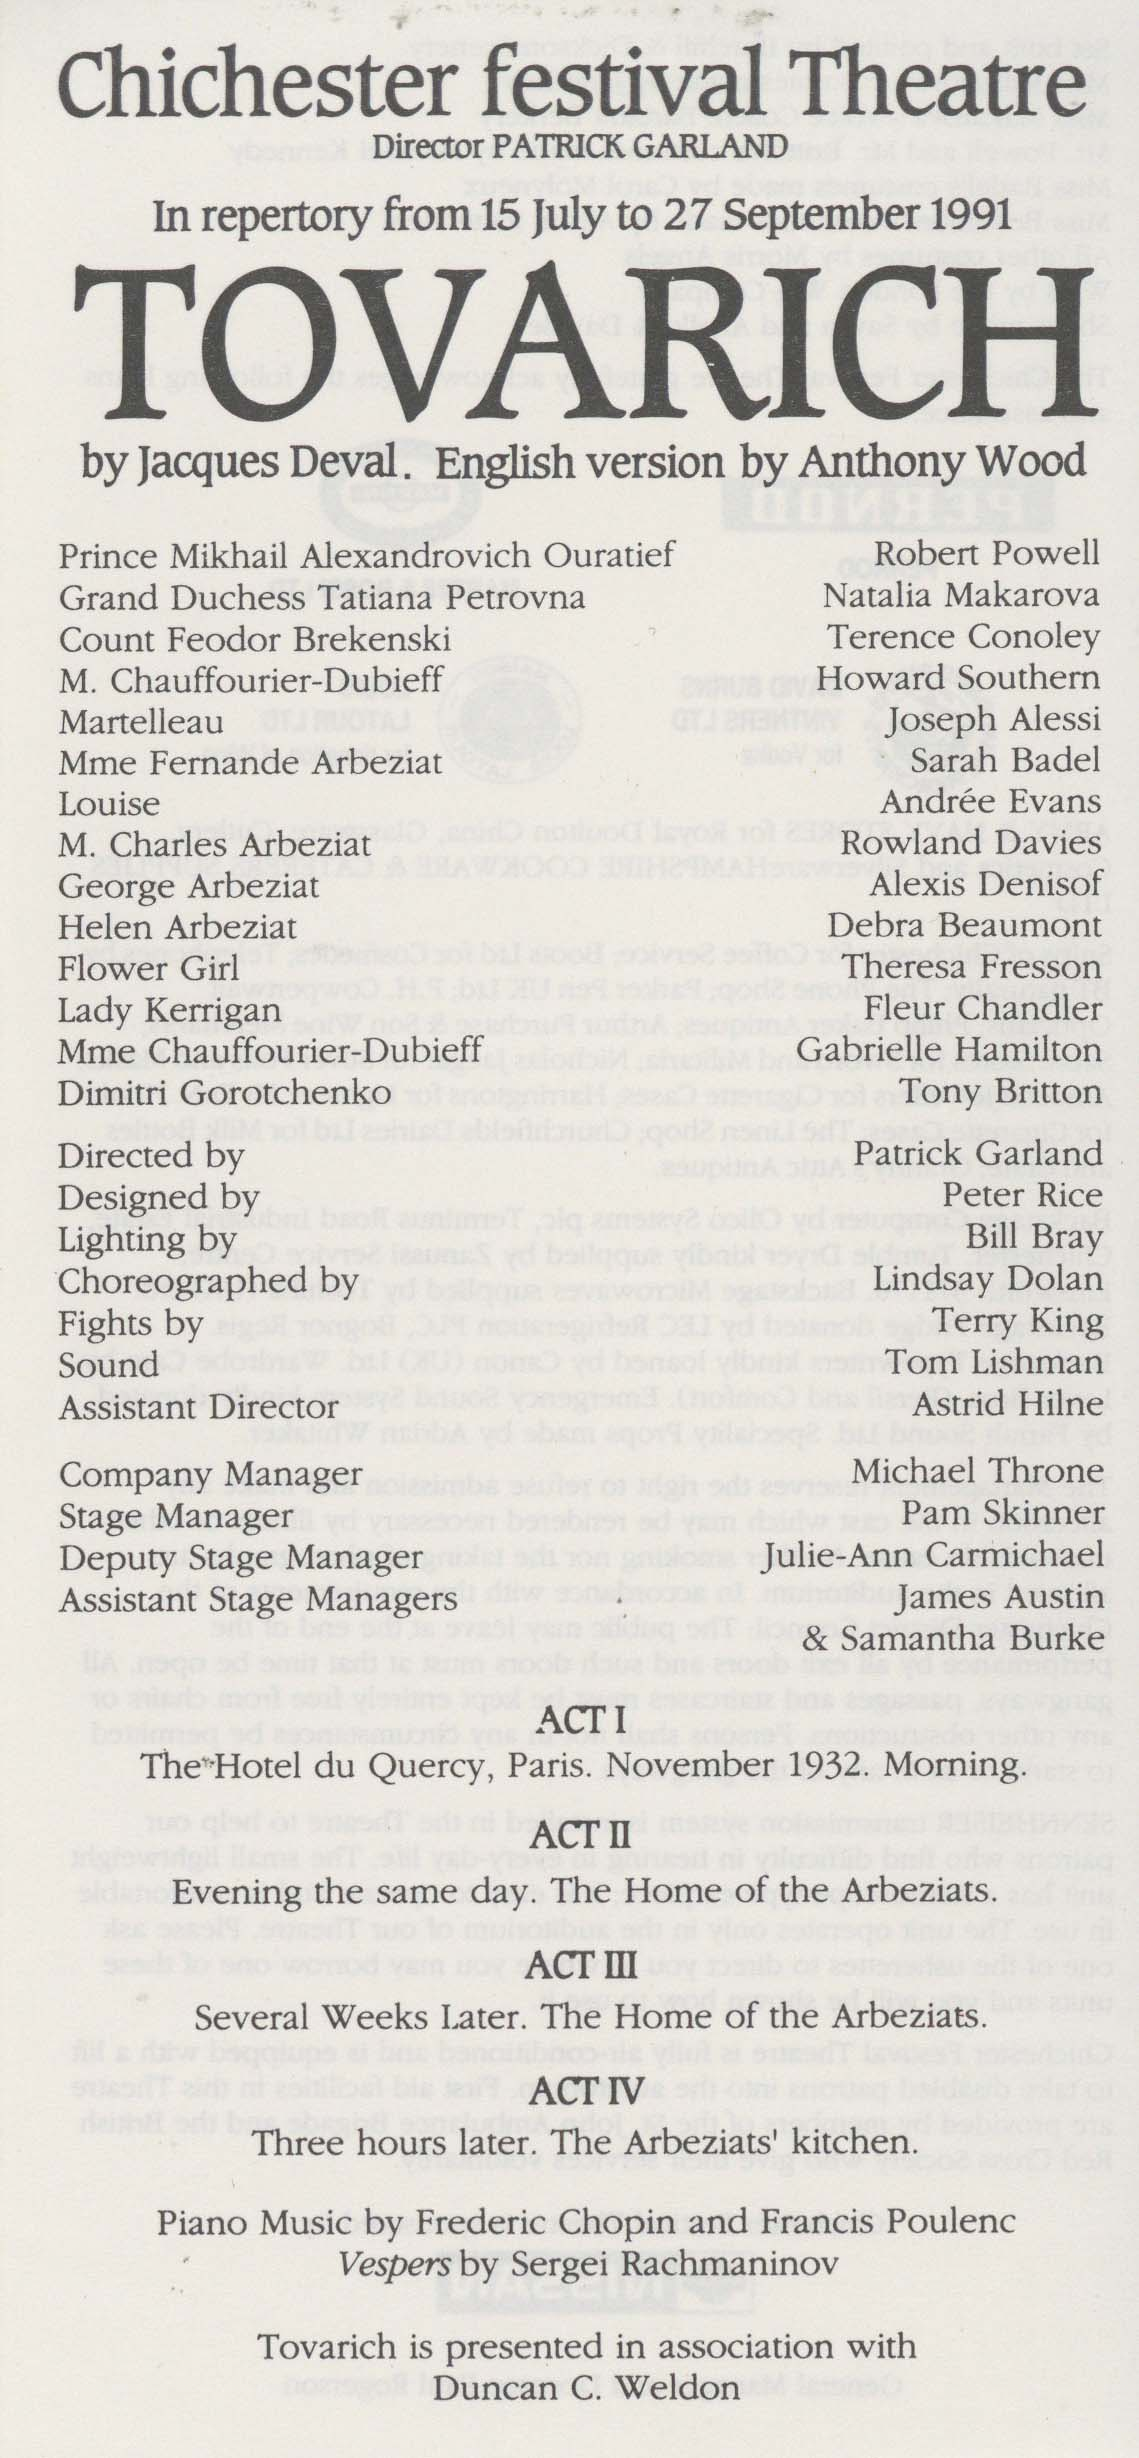 Cast List - Tovarich - 1991 - 1 of 2